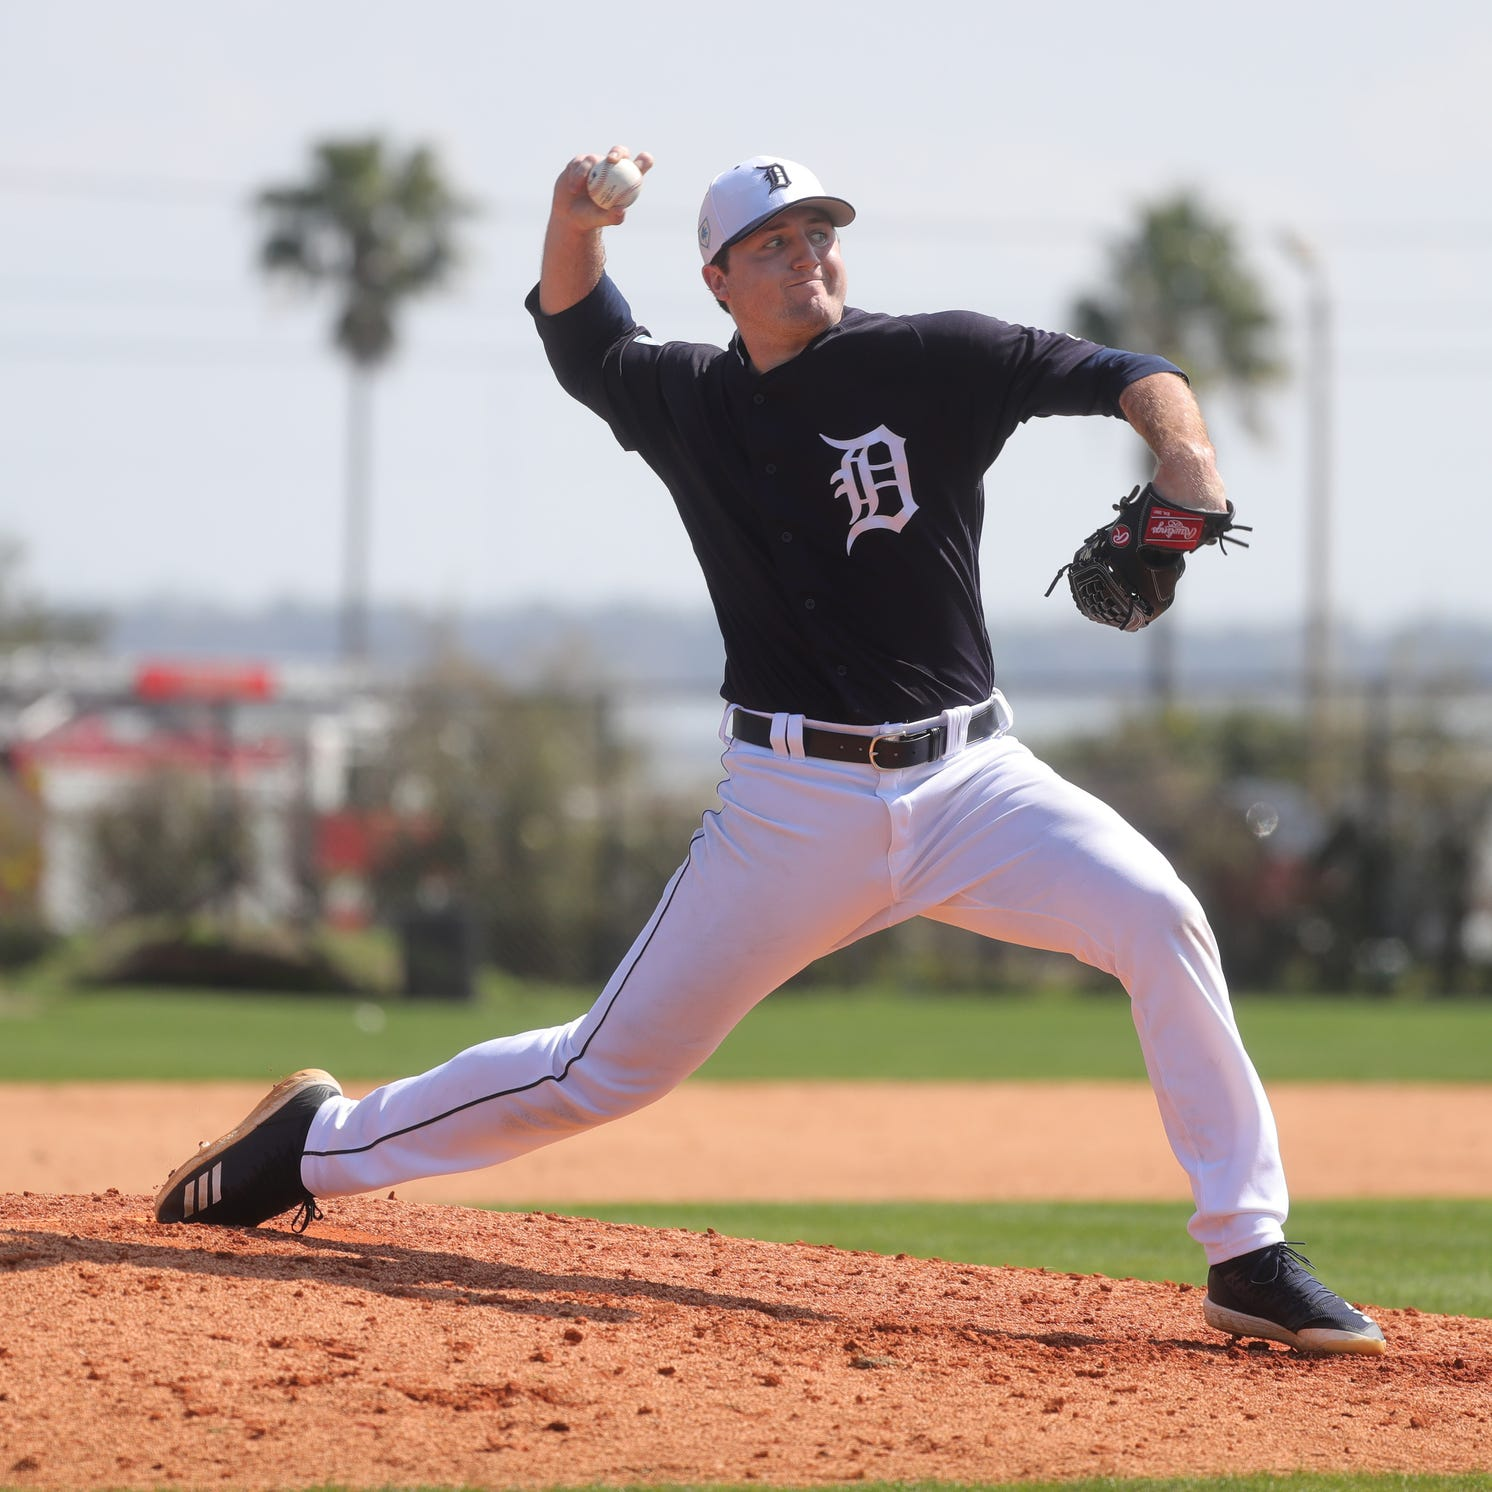 Detroit Tigers get first look at Casey Mize: 'He's impressive'